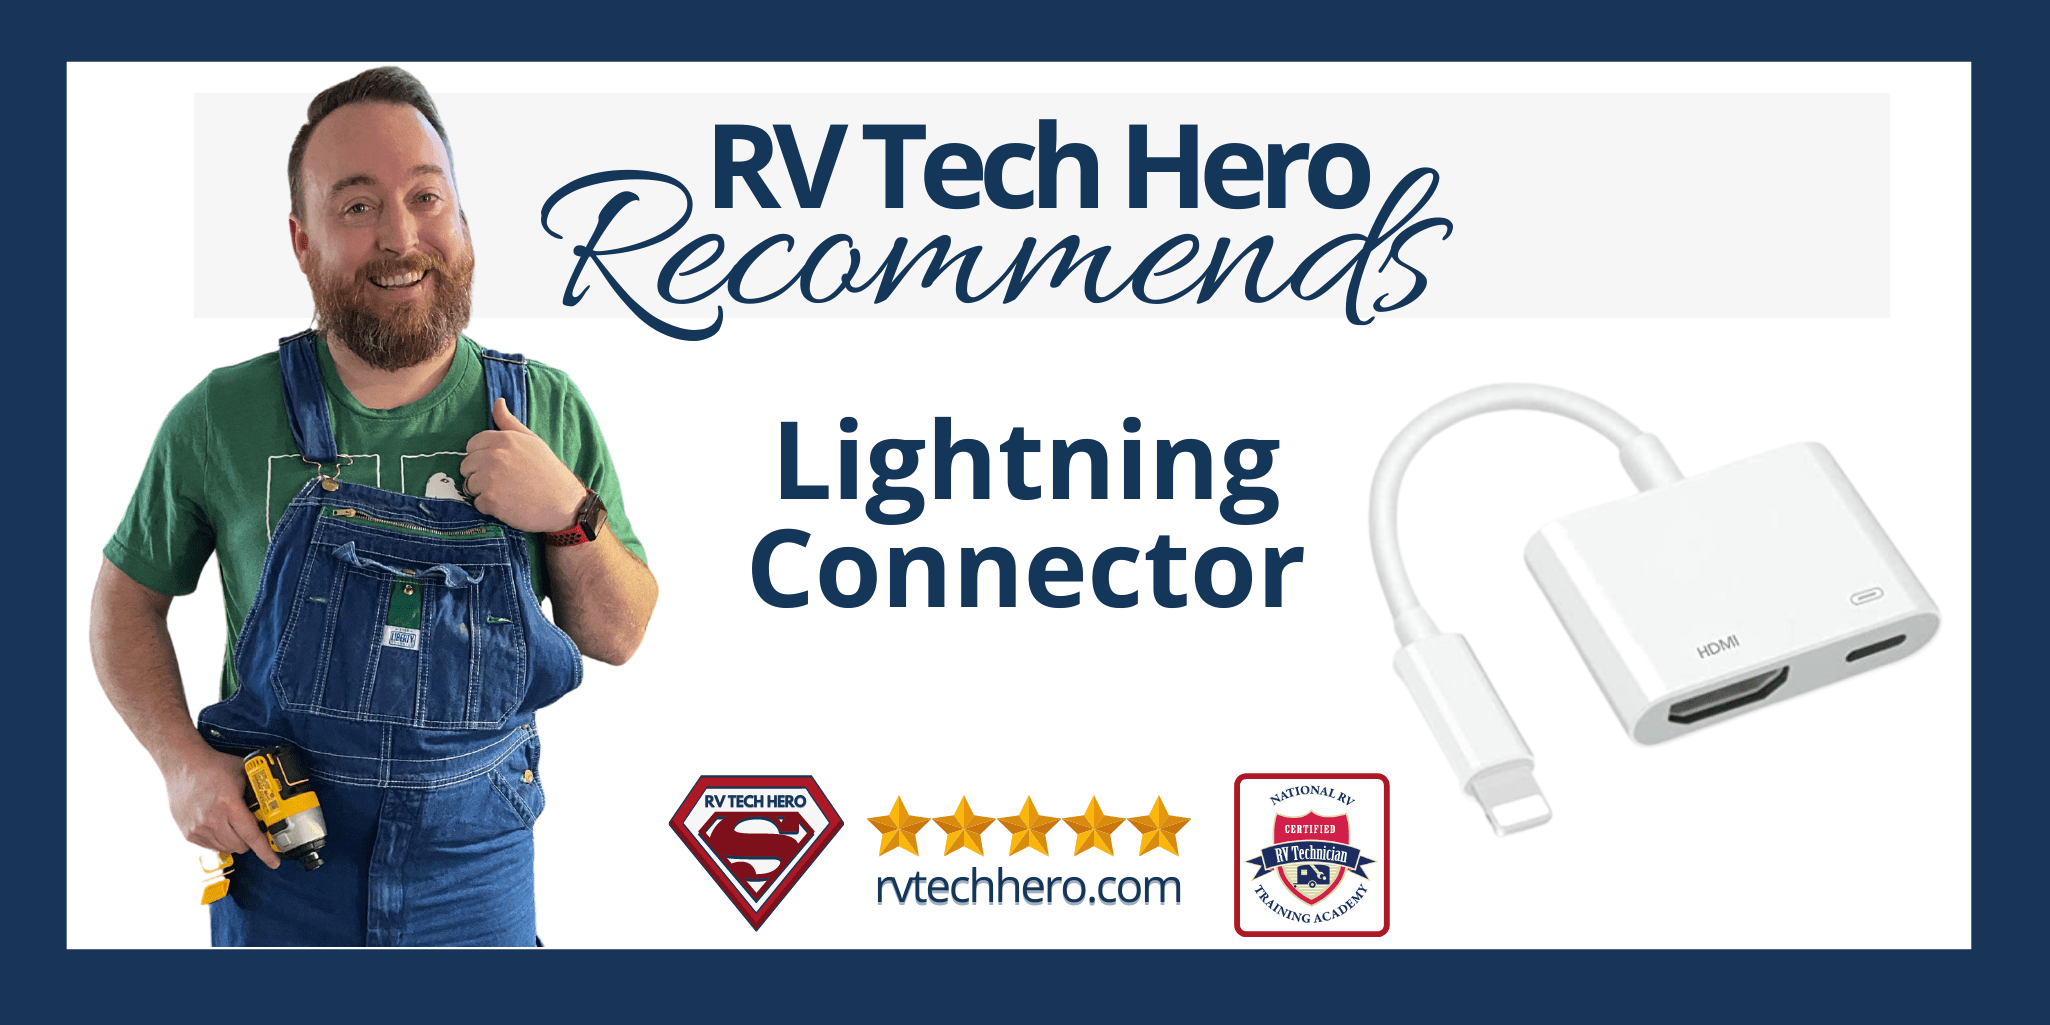 RV Tech Hero Recommends Lightning Connector